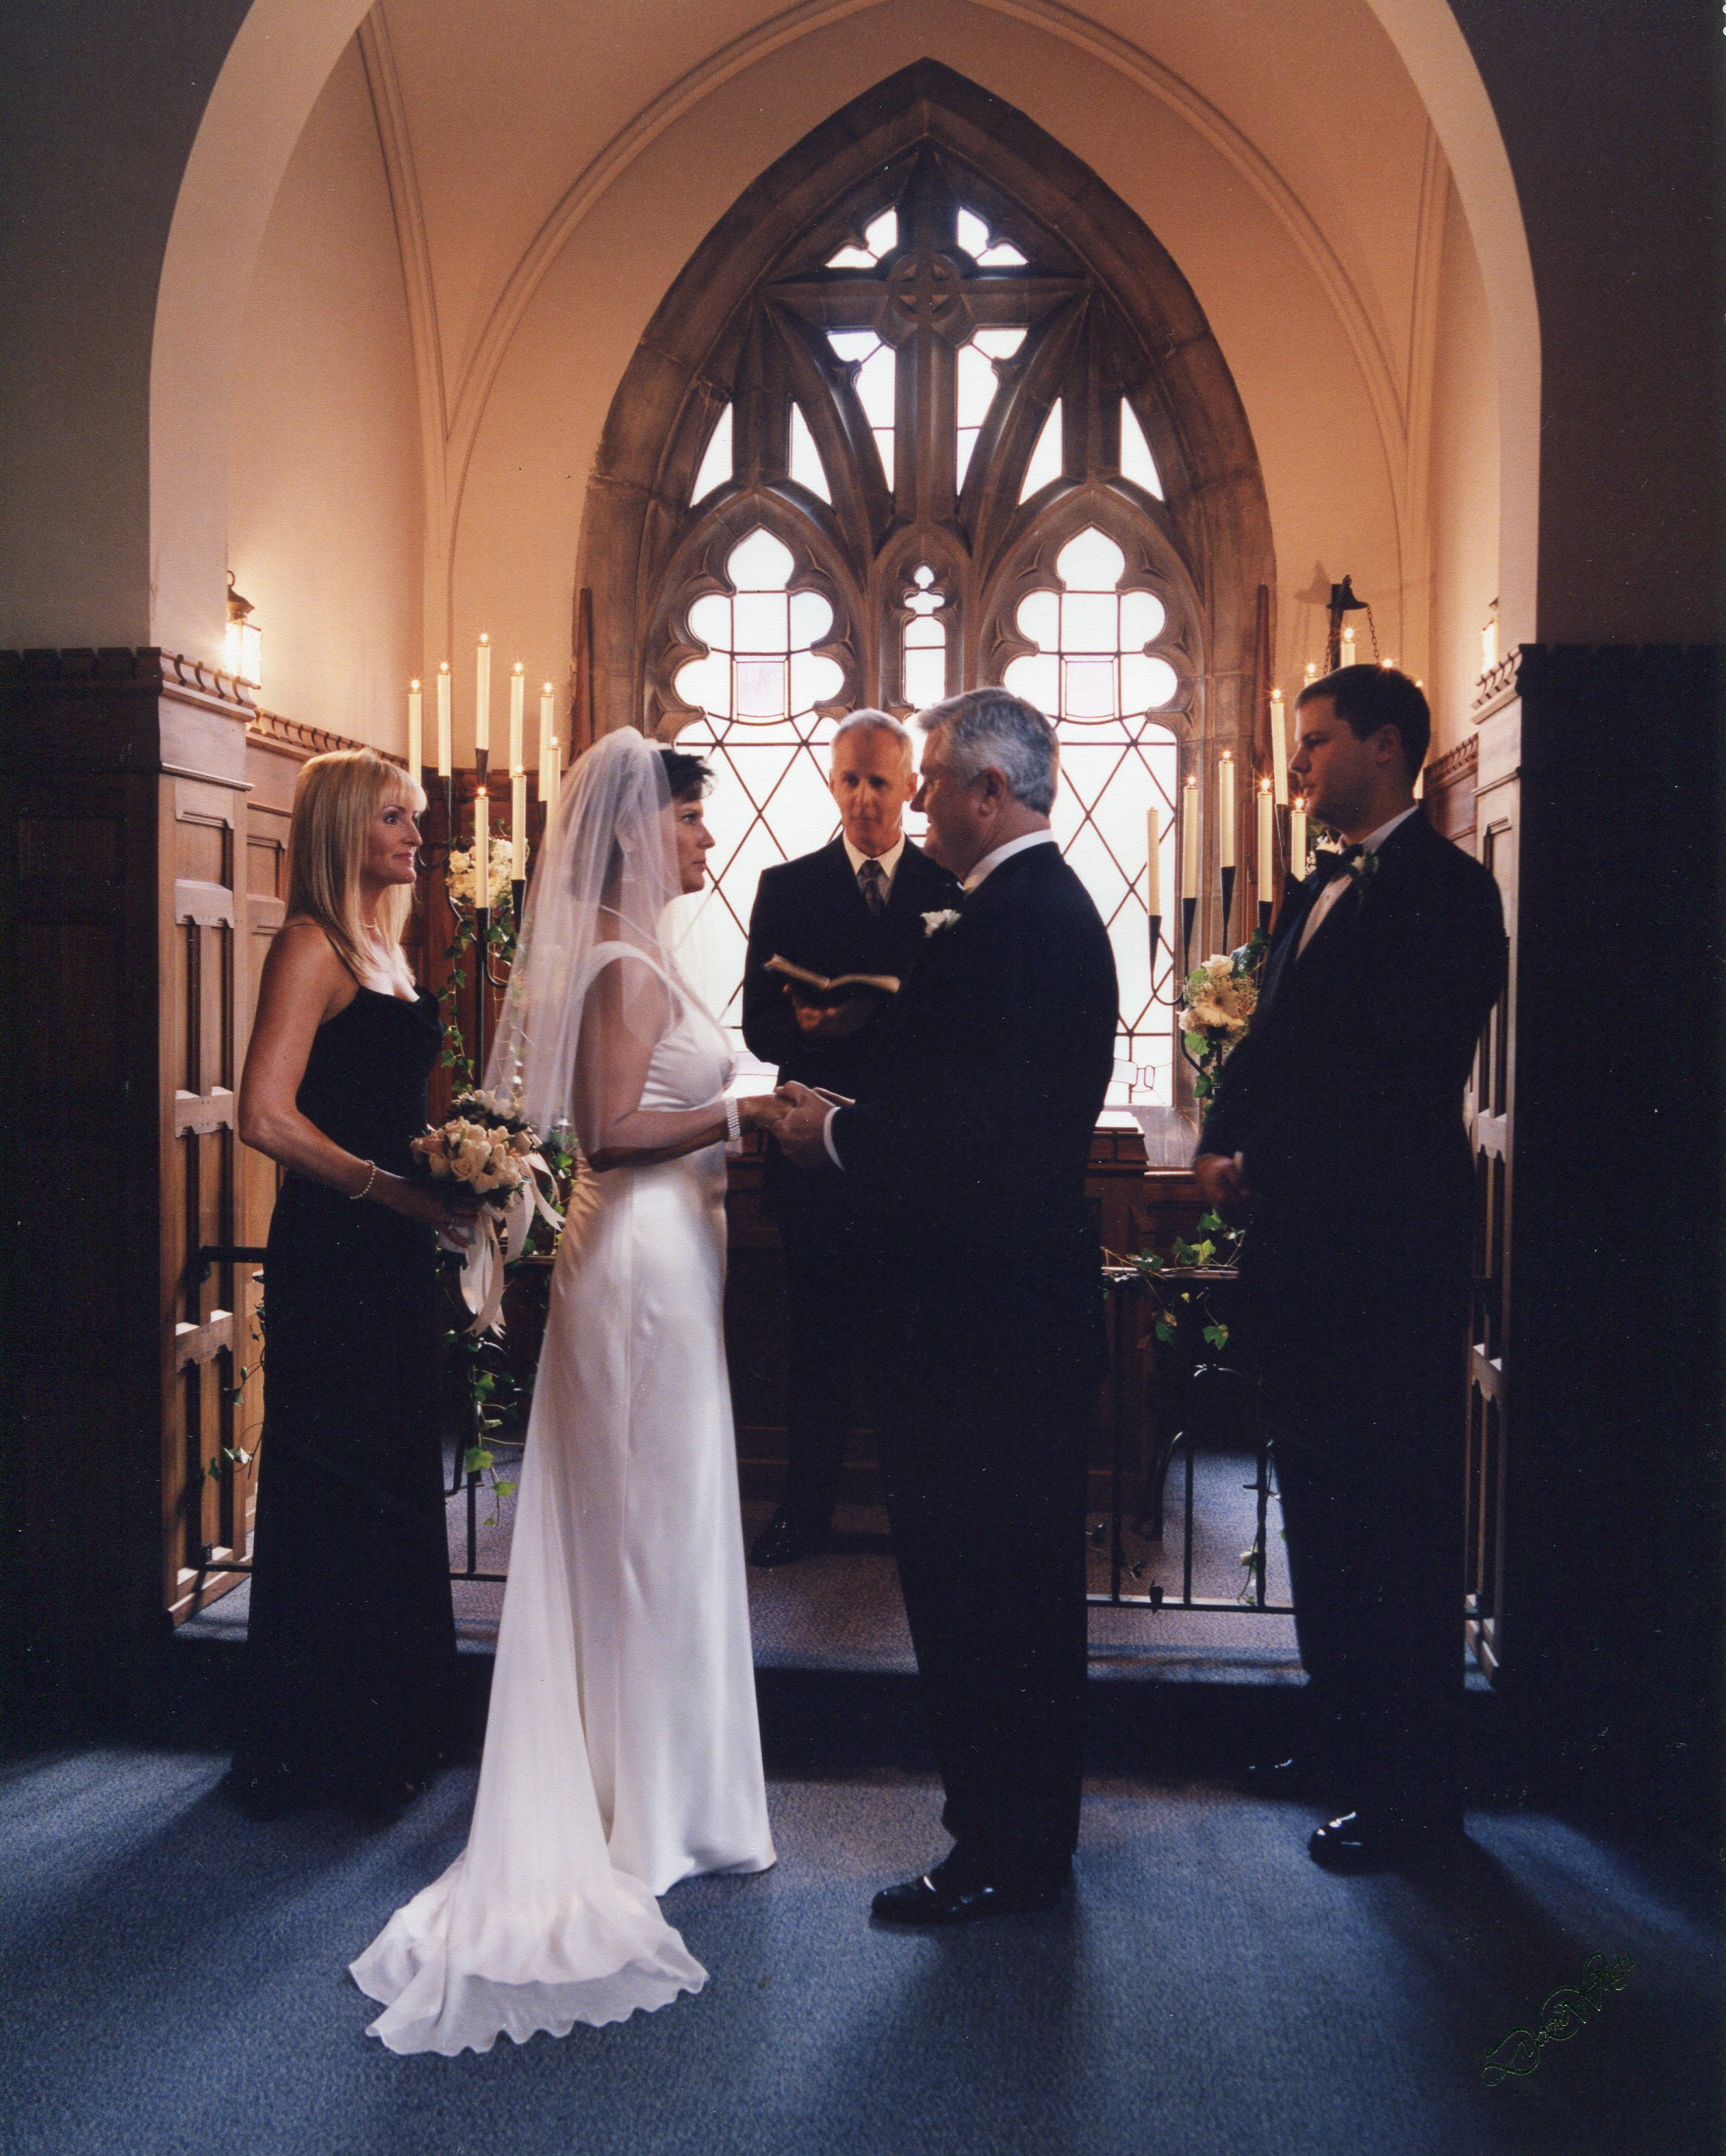 Evening Wedding At Skinner Chapel Photo By David Wright